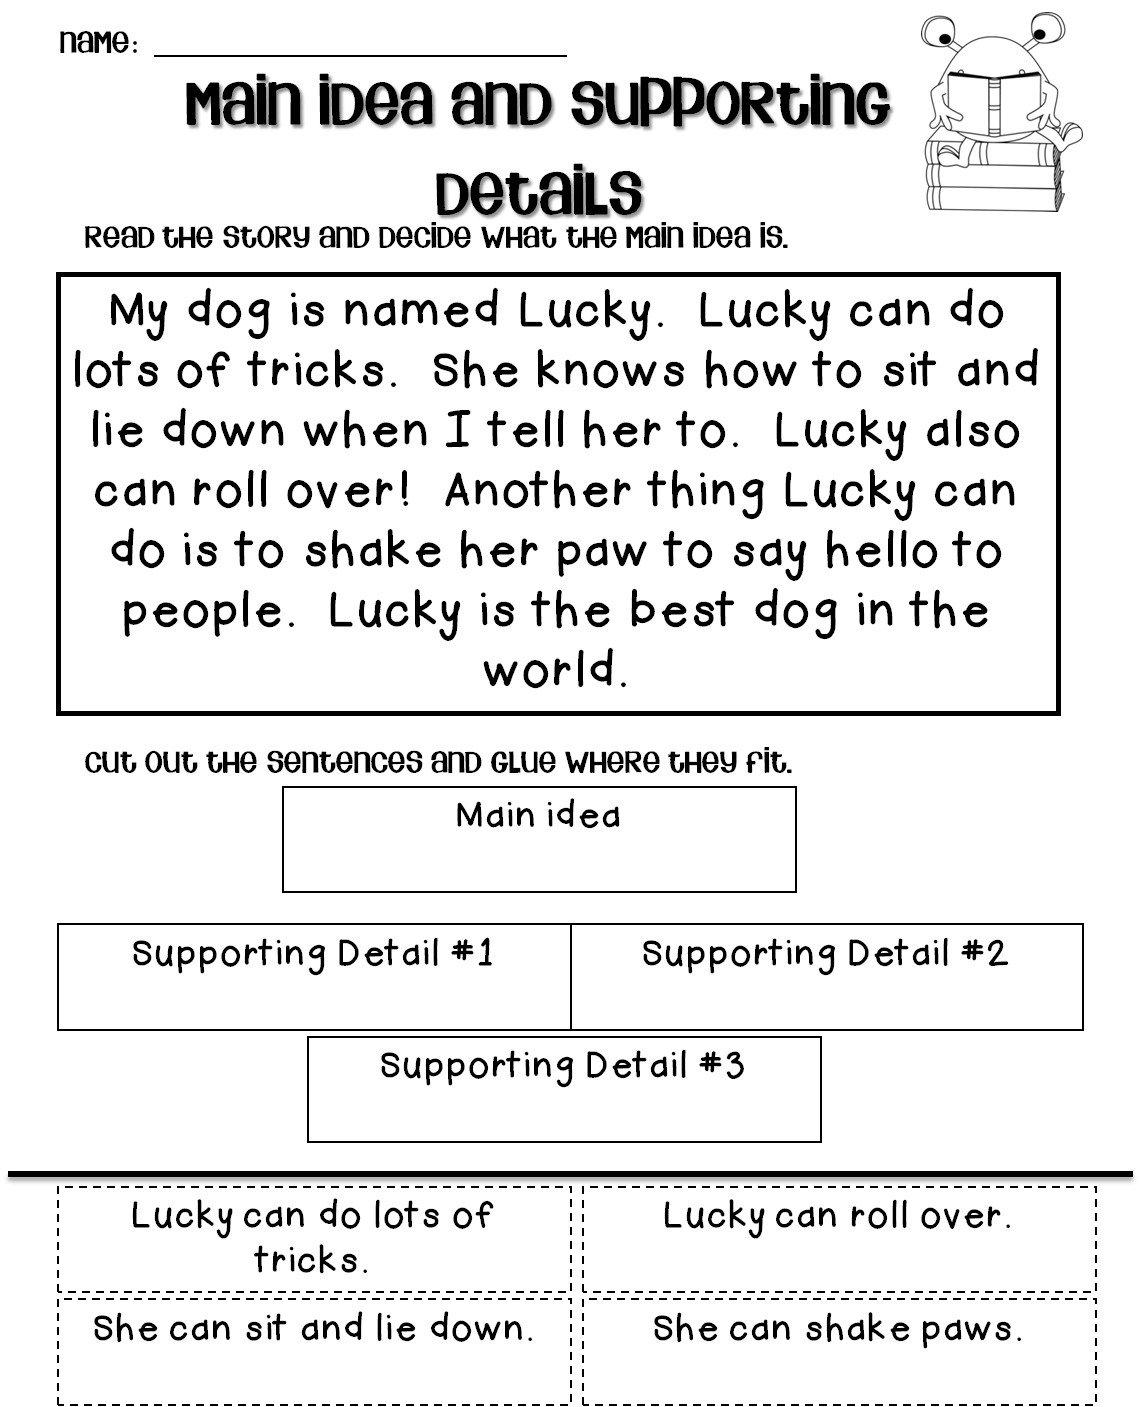 Main Idea Worksheets Third Grade Everyday Math Grade 5 Homelinks Third Grade Vocabulary